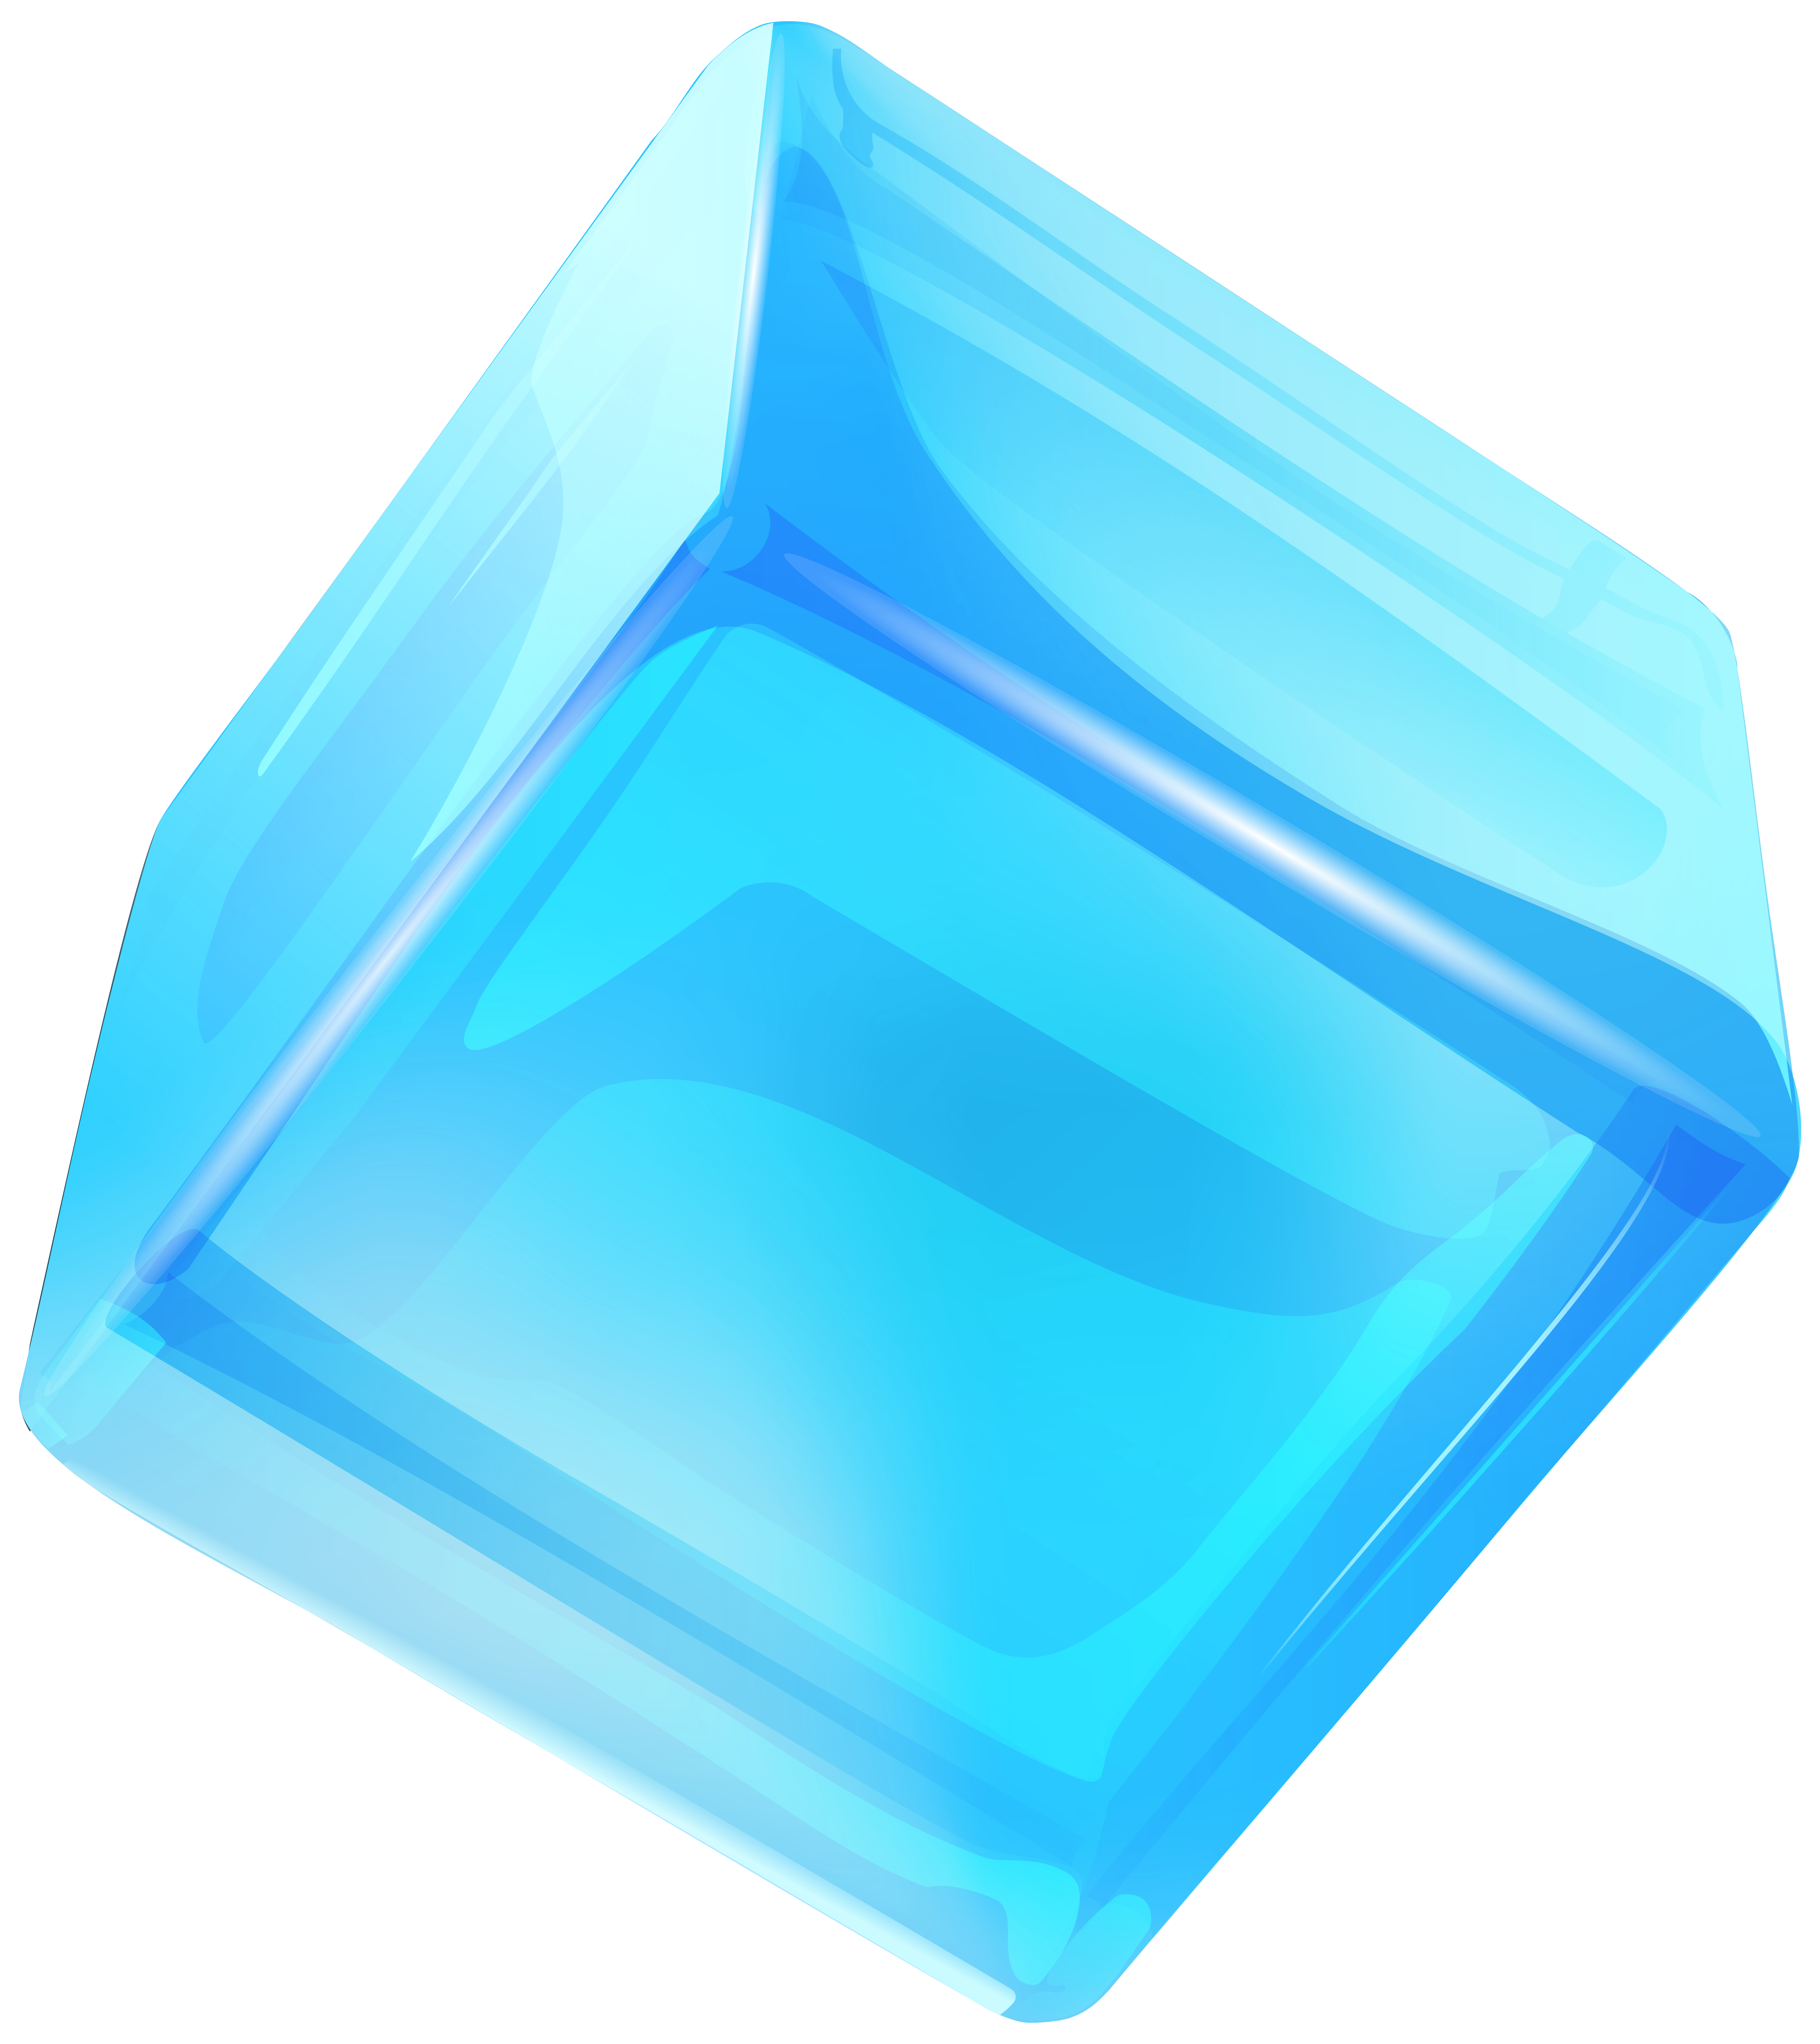 5581x6268 Blue Ice Cube Png Clip Art